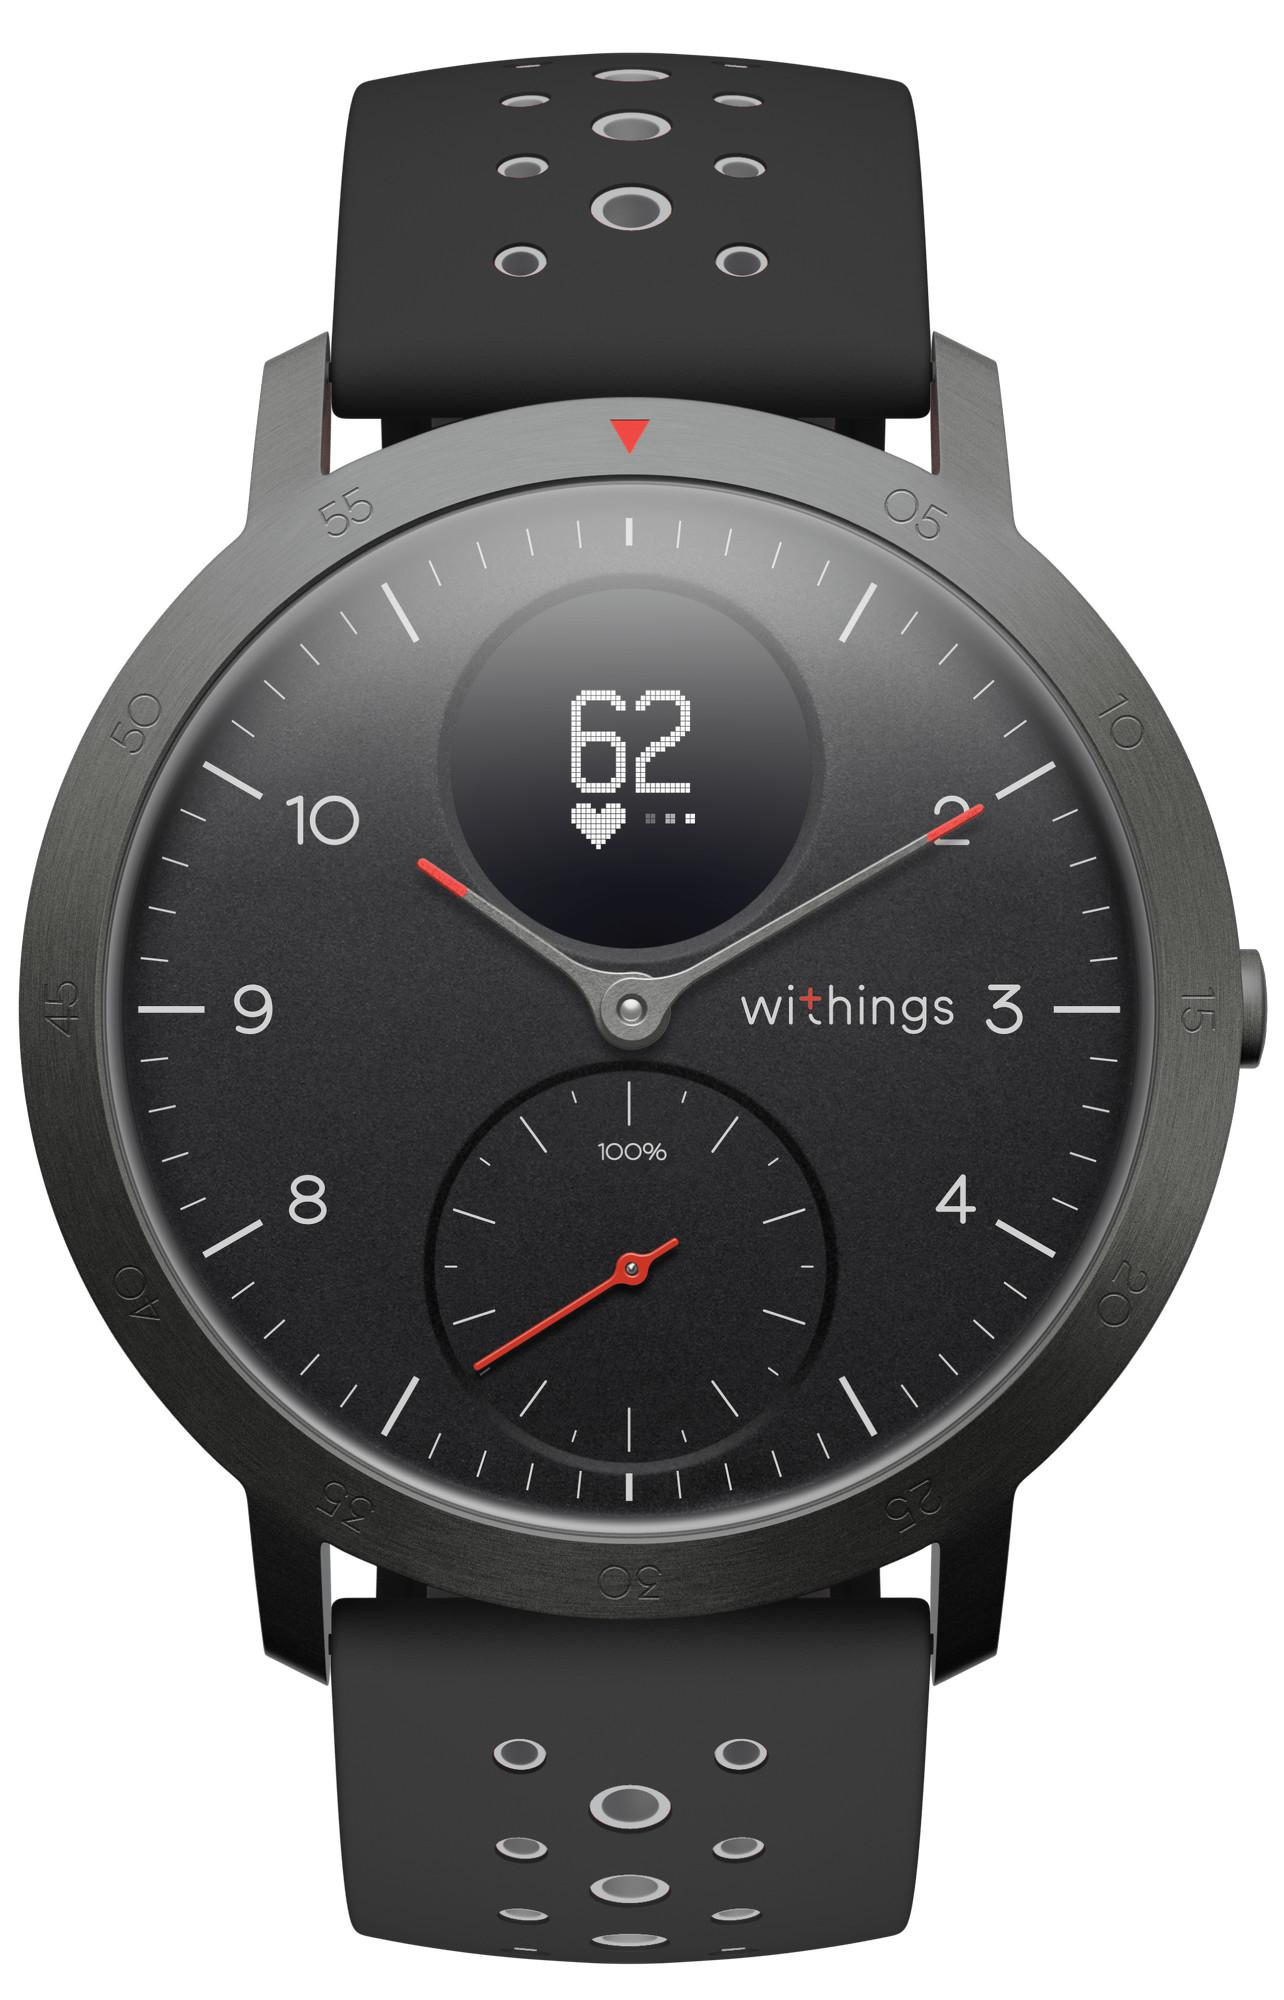 Inteligente Negro Gpssatélite Withings Sport Analógica Steel Hr Reloj lcFTJ3K1